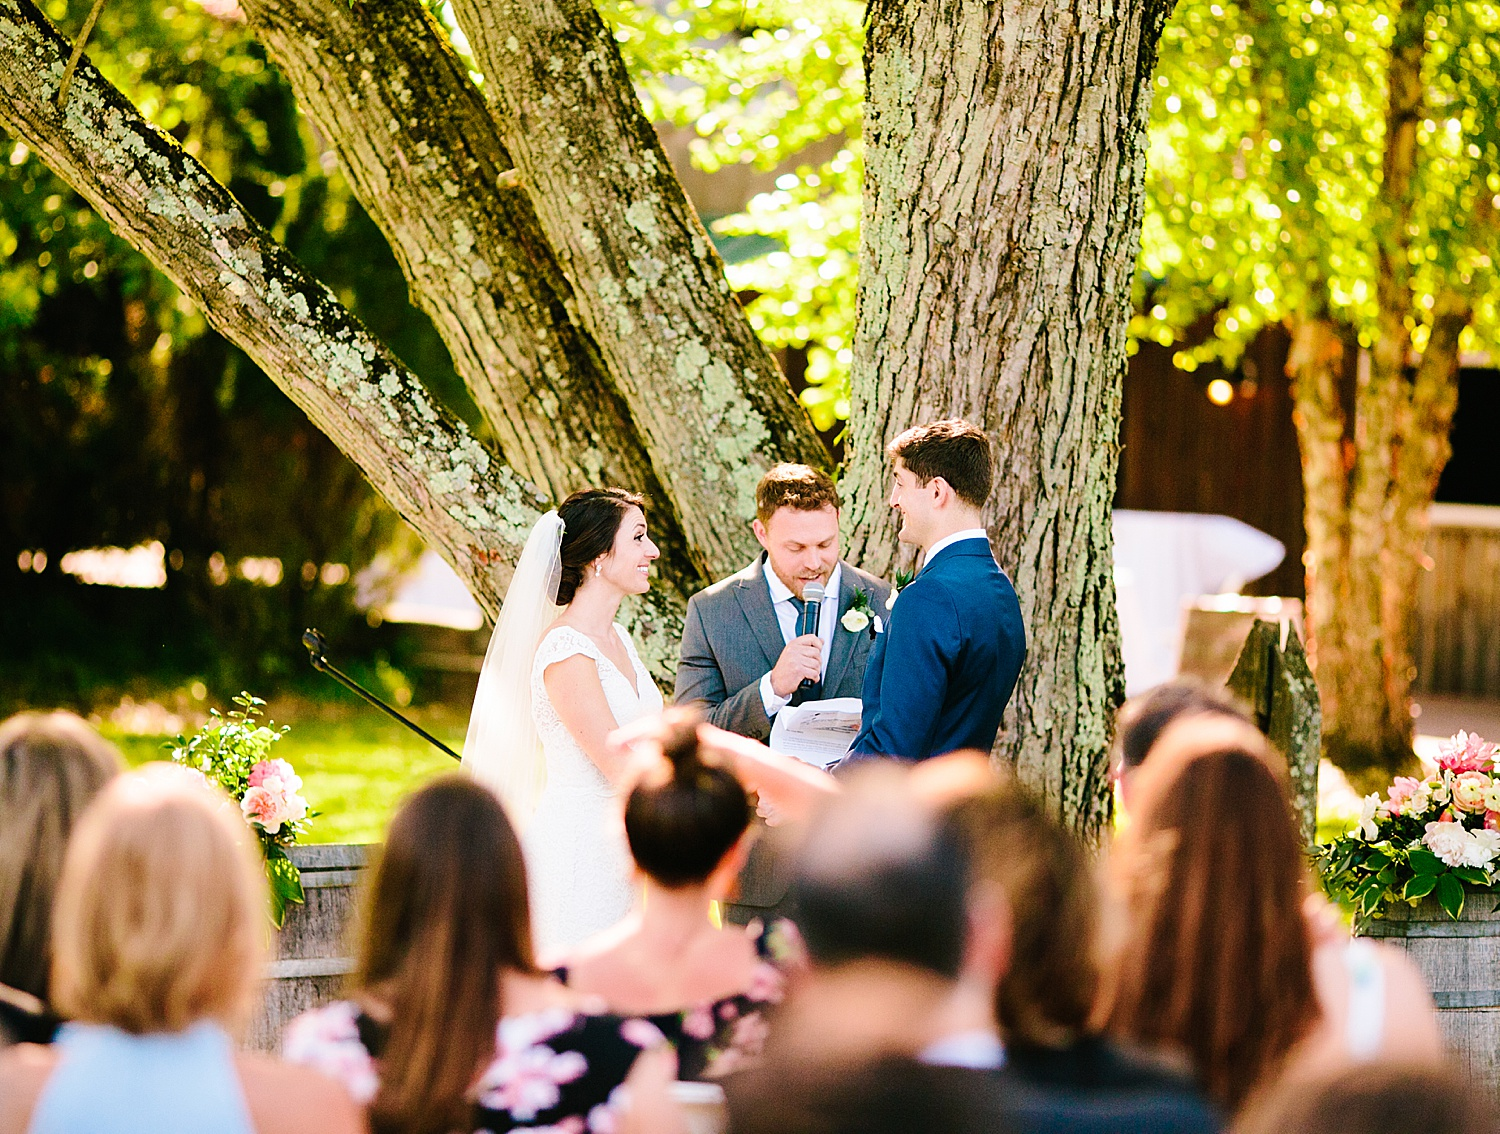 emilyaustin_rosebank_winery_newhope_farm_wedding_image084.jpg